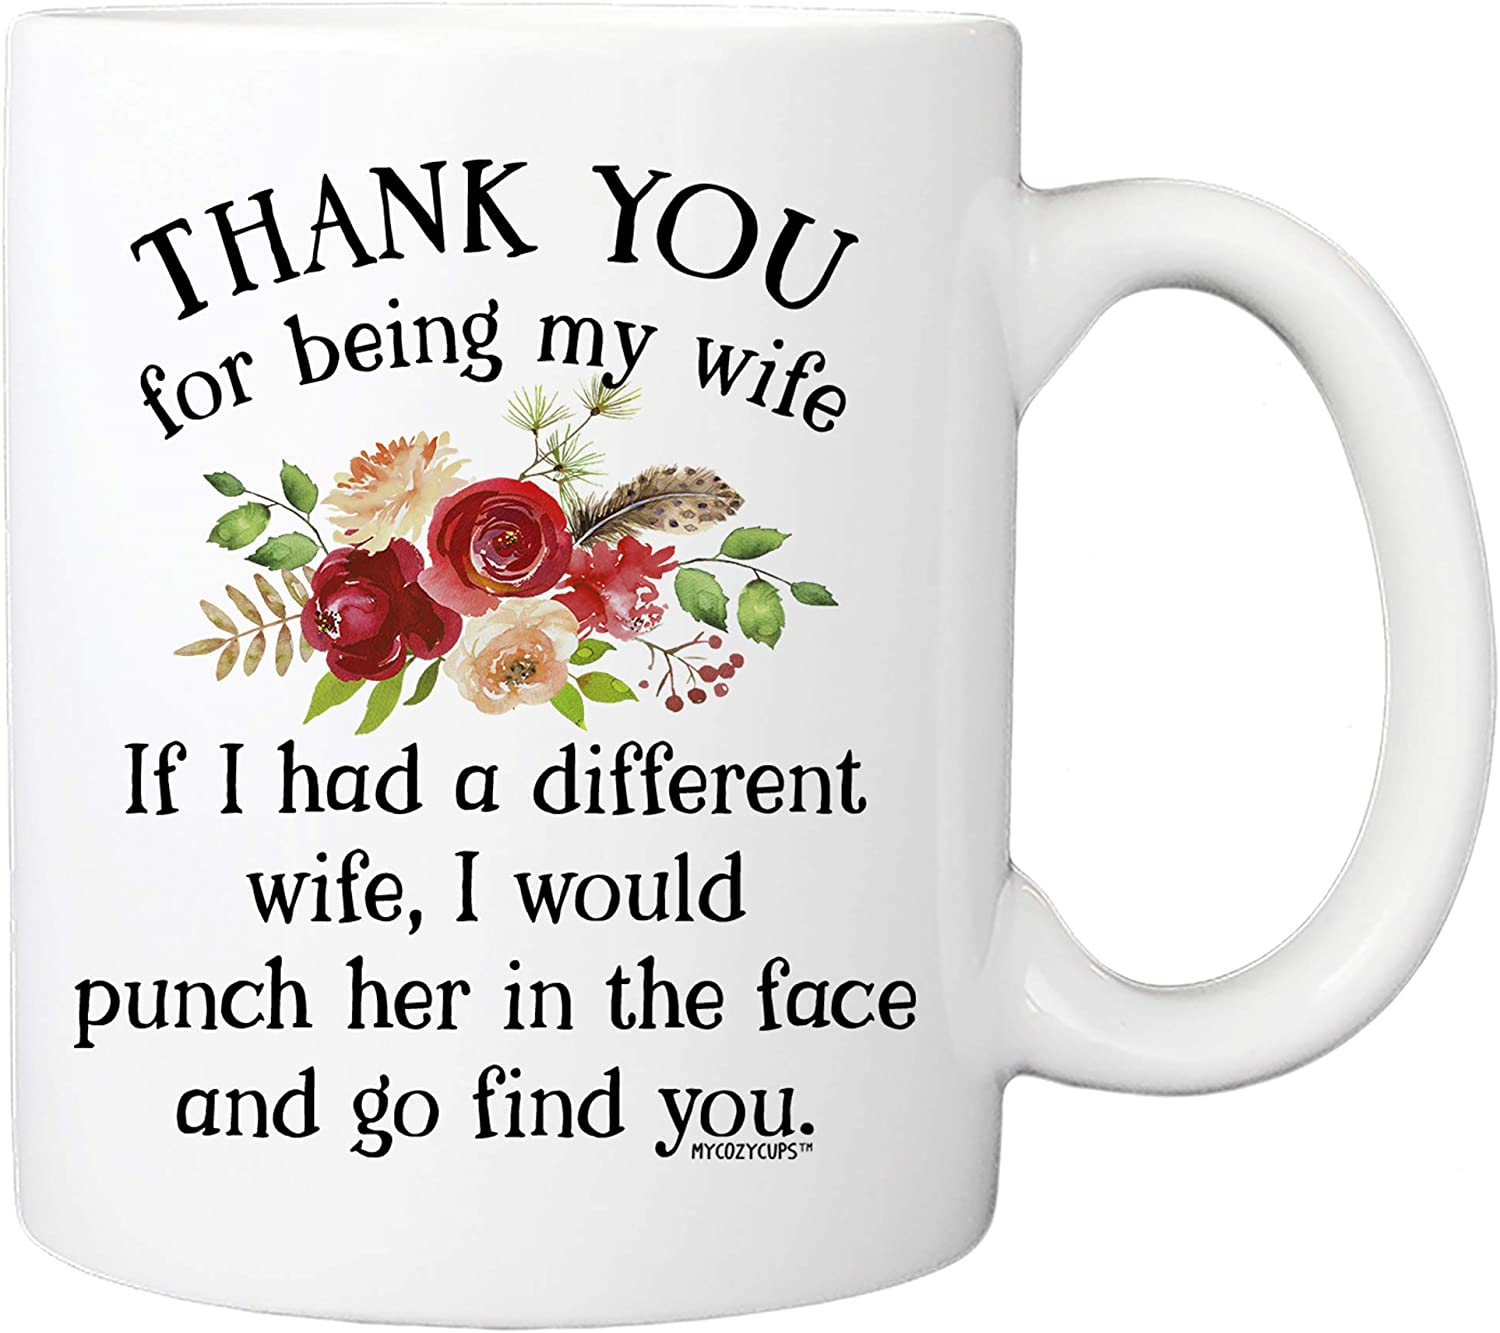 Thank You For Being My Wife Financial sales sale Coffee - 11oz Store Cup Your Mug Wifey